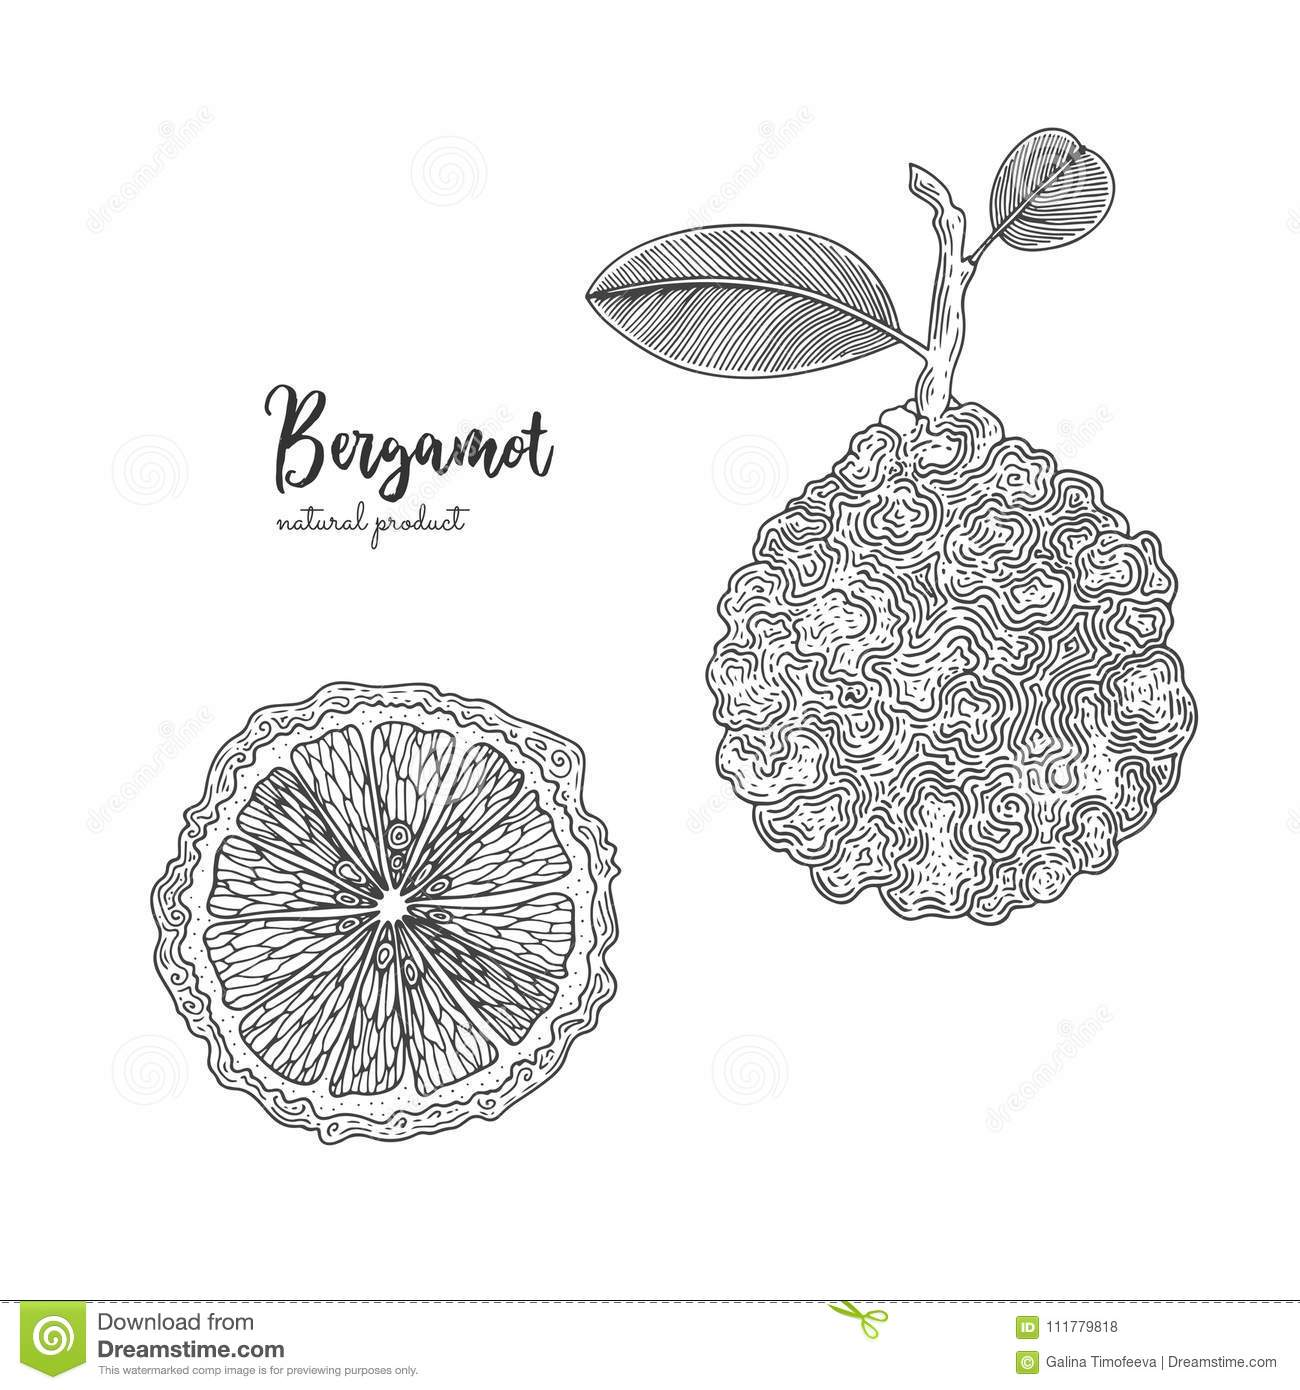 Hand drawn illustrations of bergamot isolated on white background. Hand drawn elements for menu, promotion, advertising